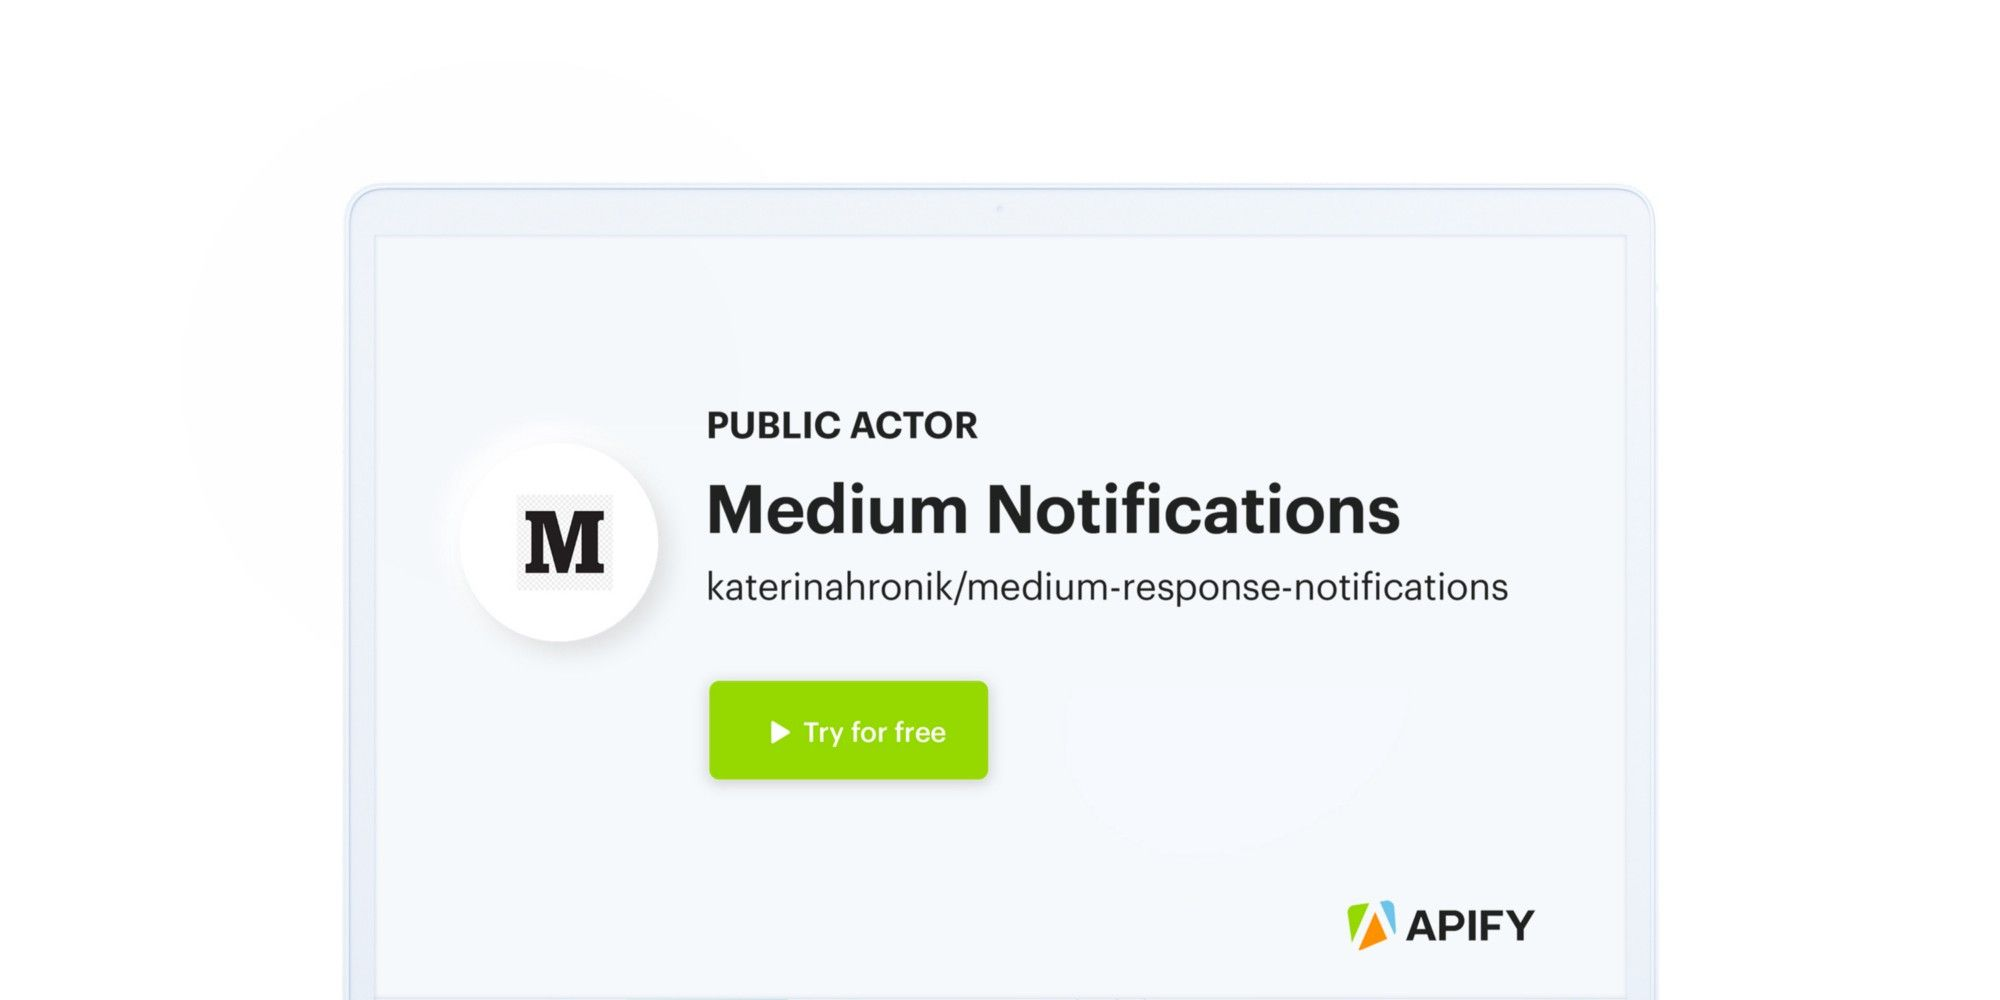 An image of Apify's Medium notifications actor